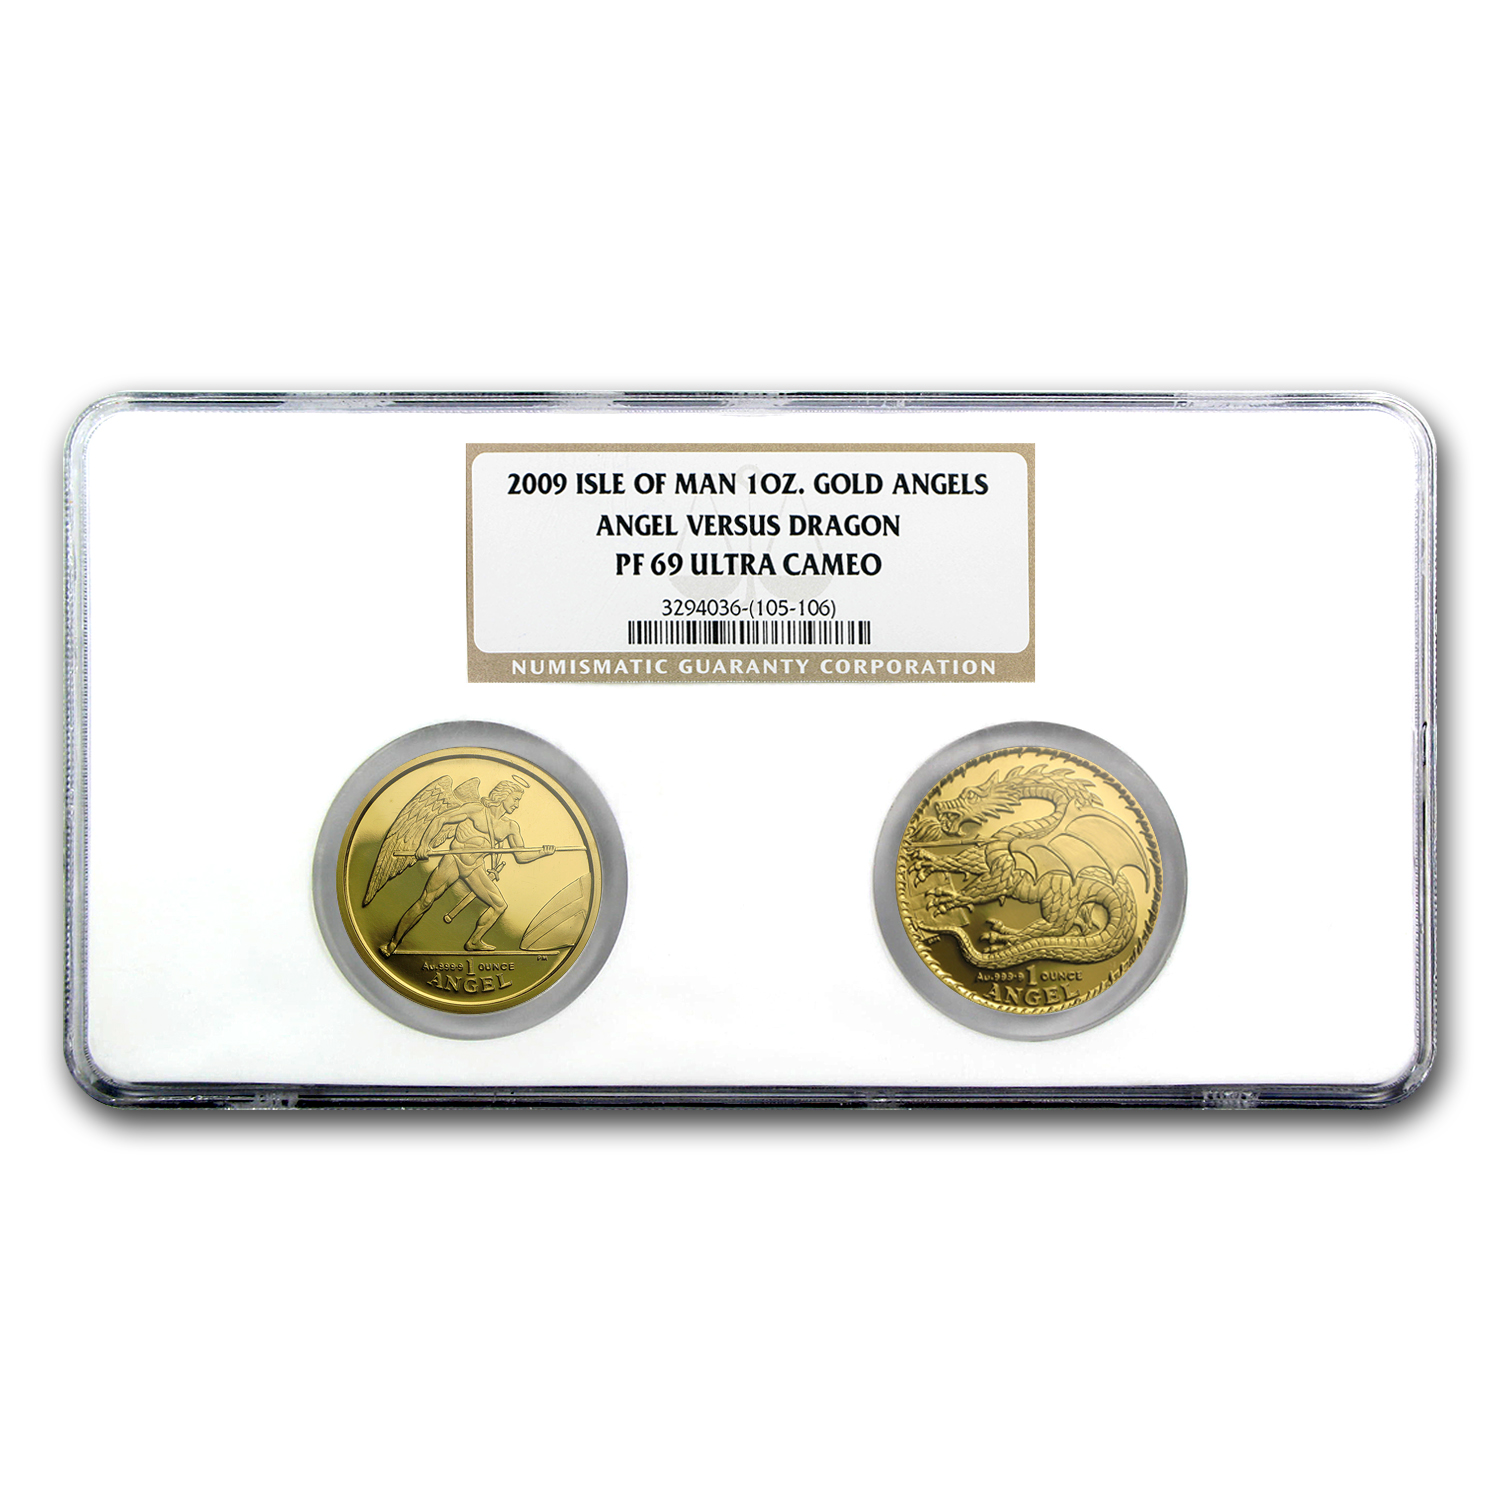 2009 Isle of Man 2-Coin Gold Angel vs Dragon Set PF-69 NGC